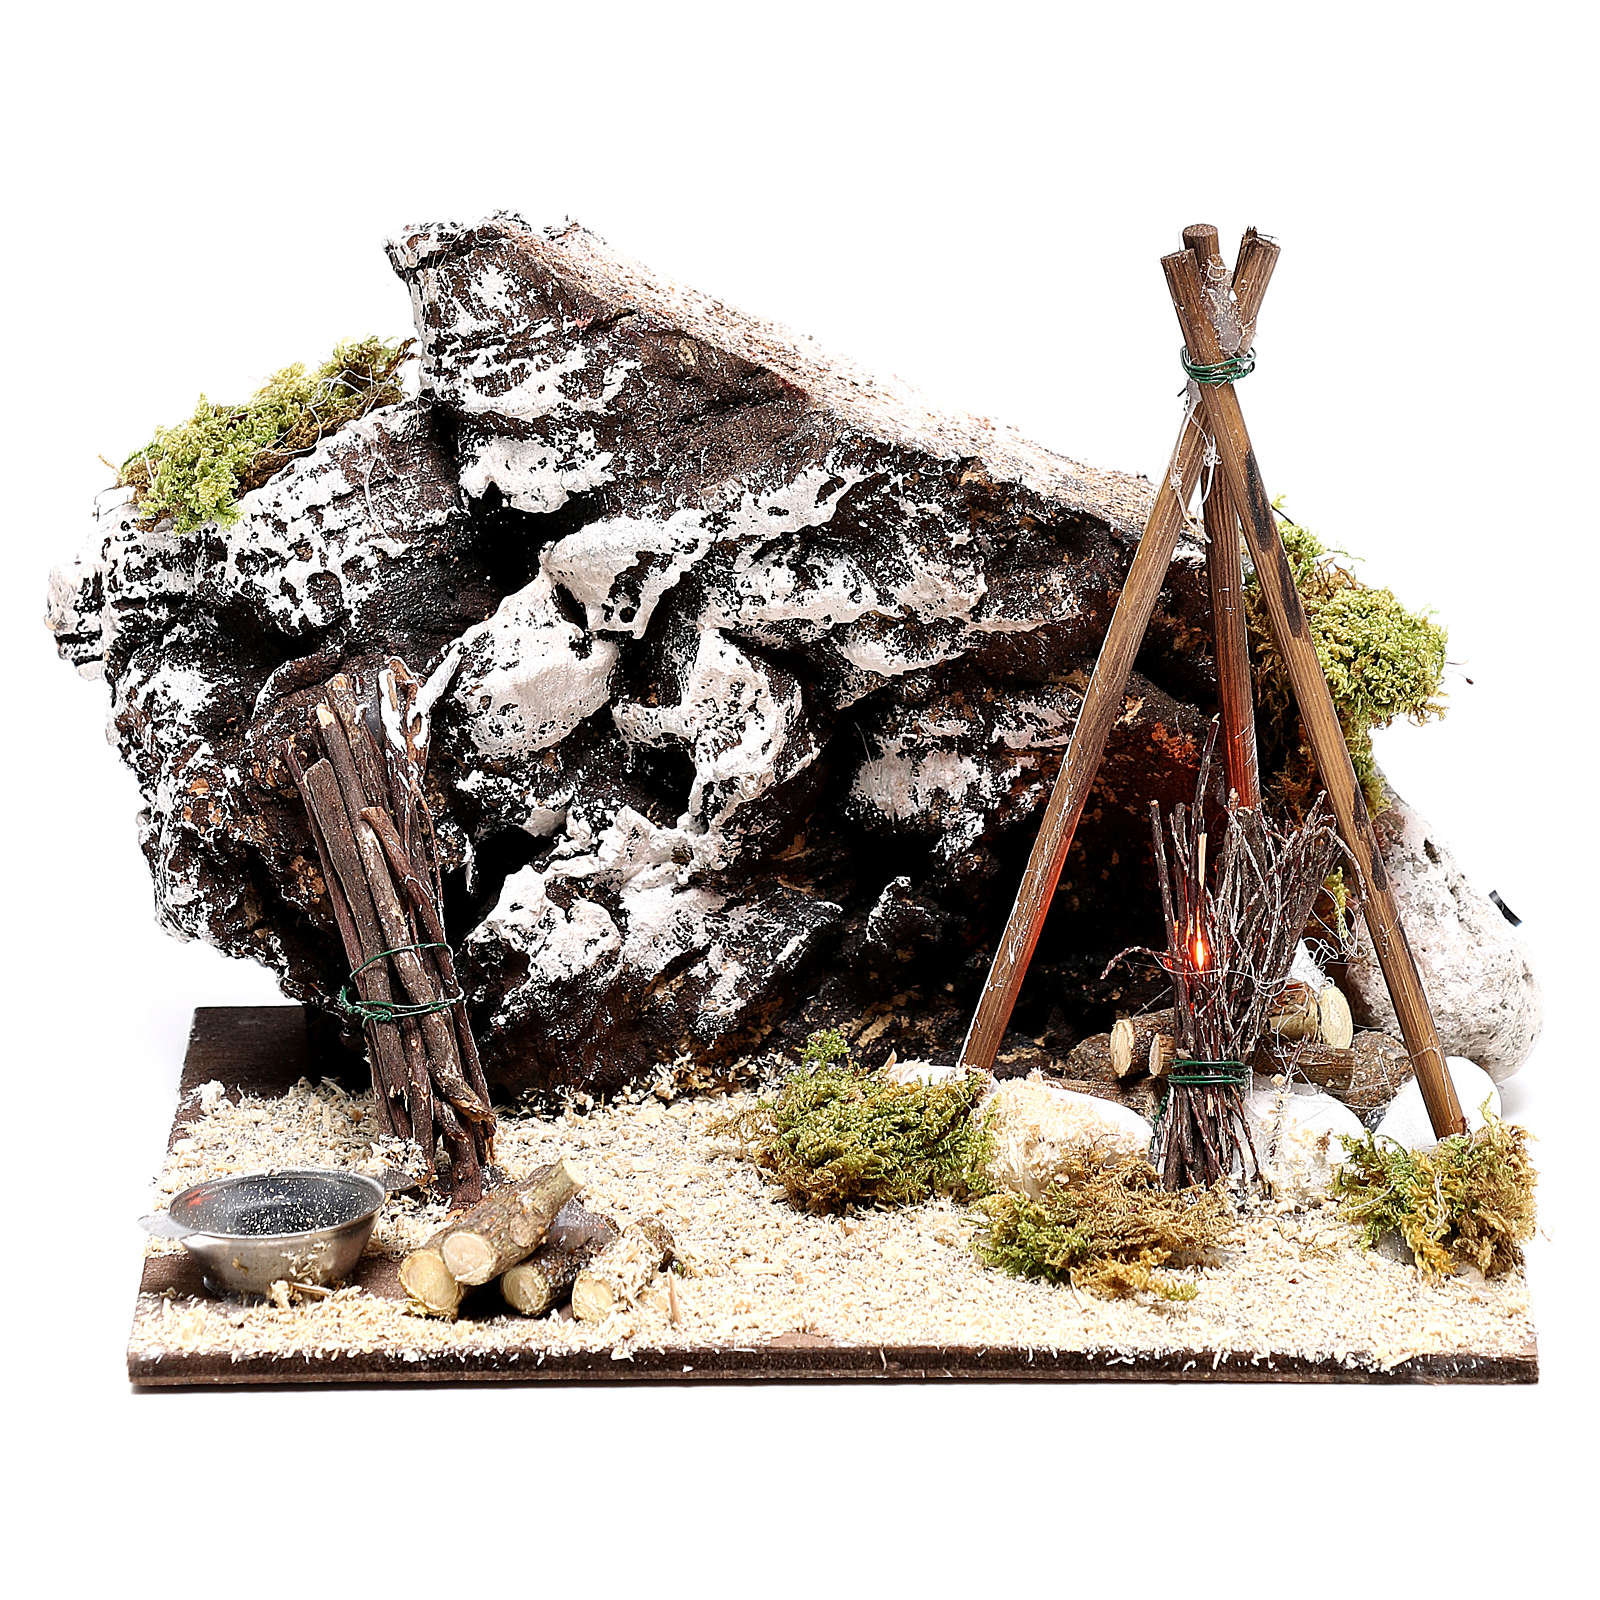 Illuminated nativity setting, rustic camping site with fire 12x15x15cm 4